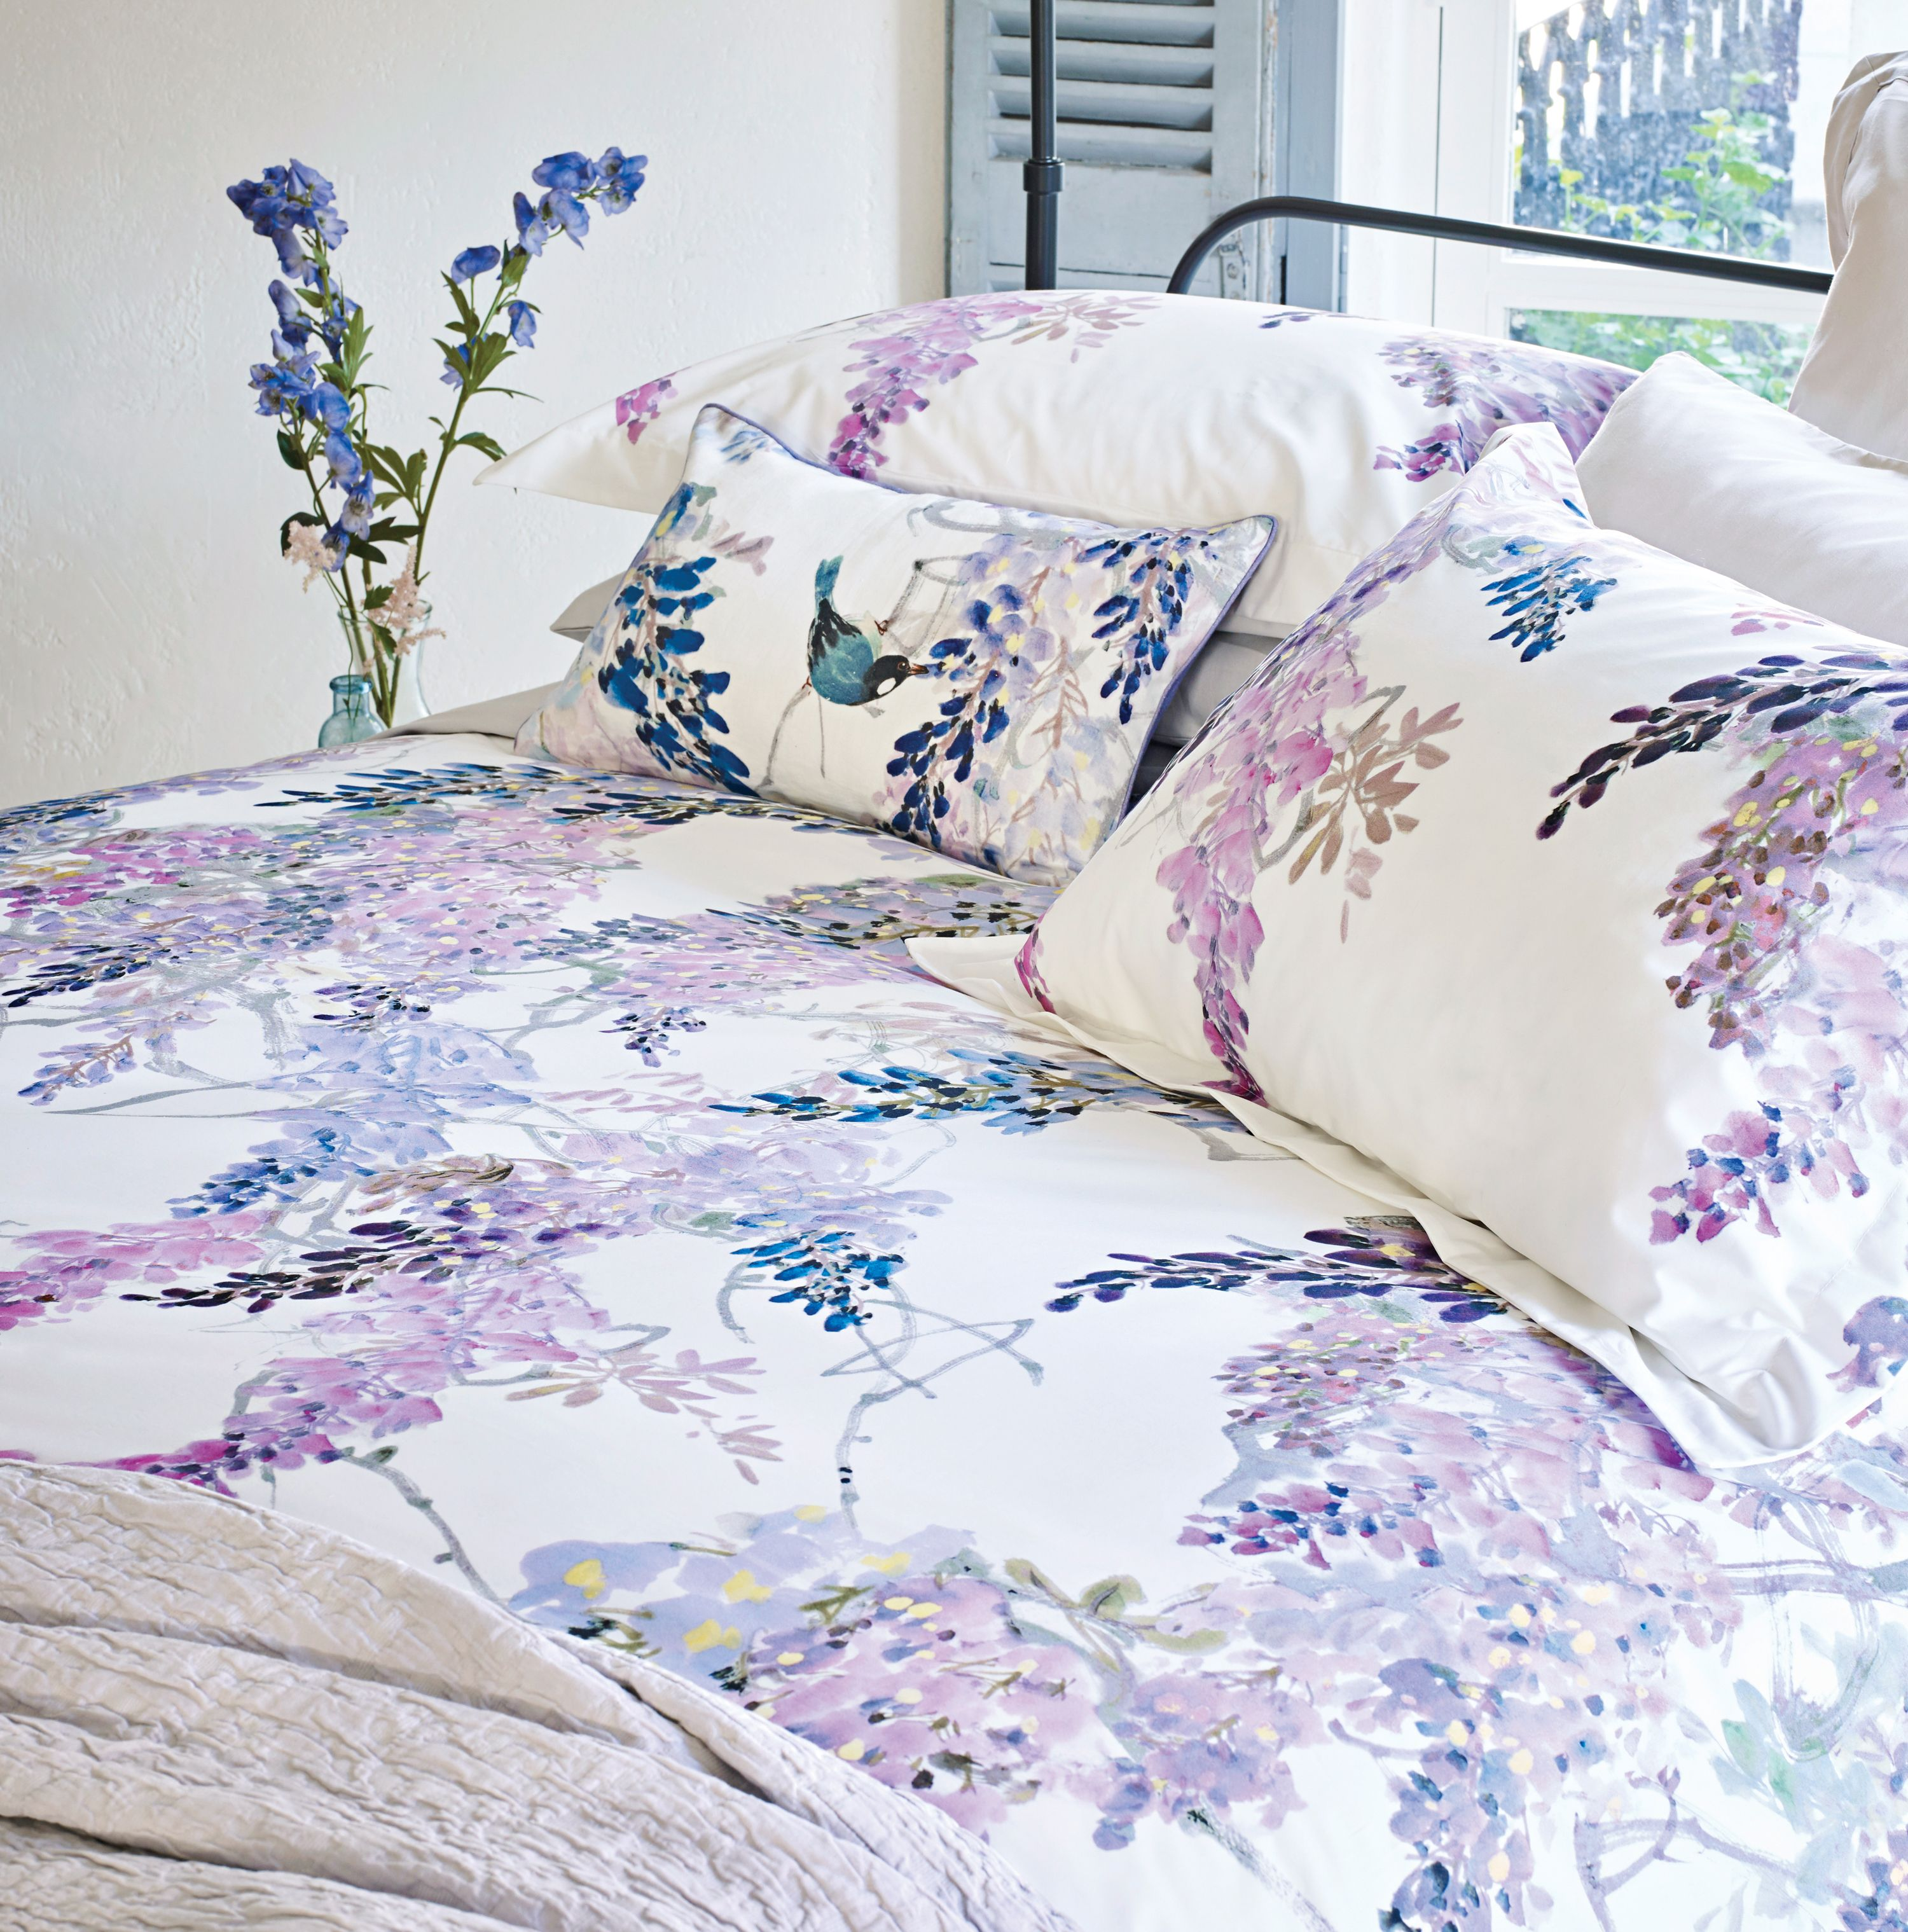 Sanderson Wisteria Falls Head Of Bed With The Sanderson Amethyst Manderley Matelasse Throw And And Printed Floral T Luxury Duvet Covers Home Bedroom Design Bed